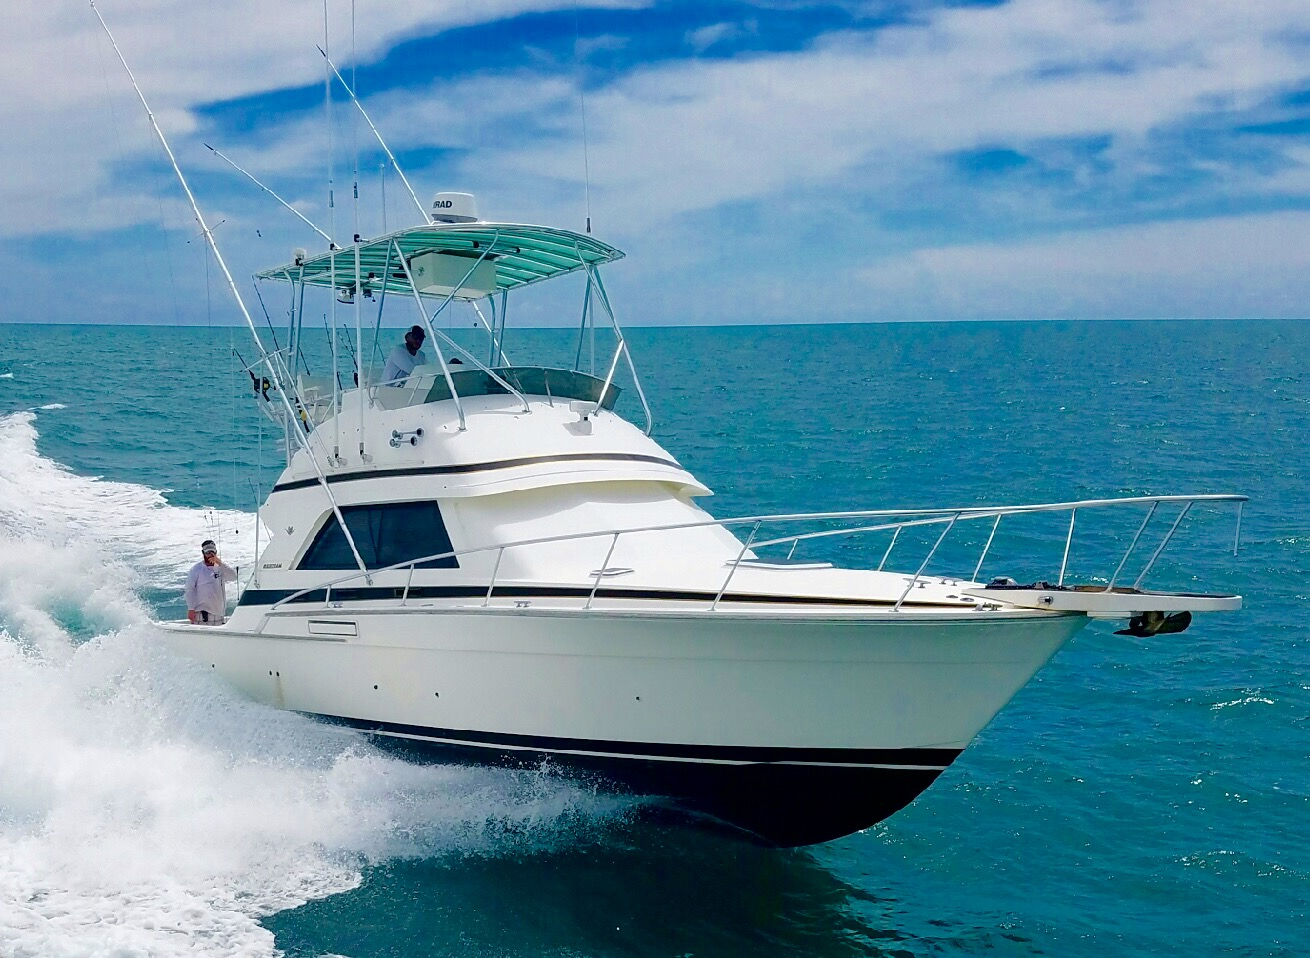 37' Bertram Miss Chief